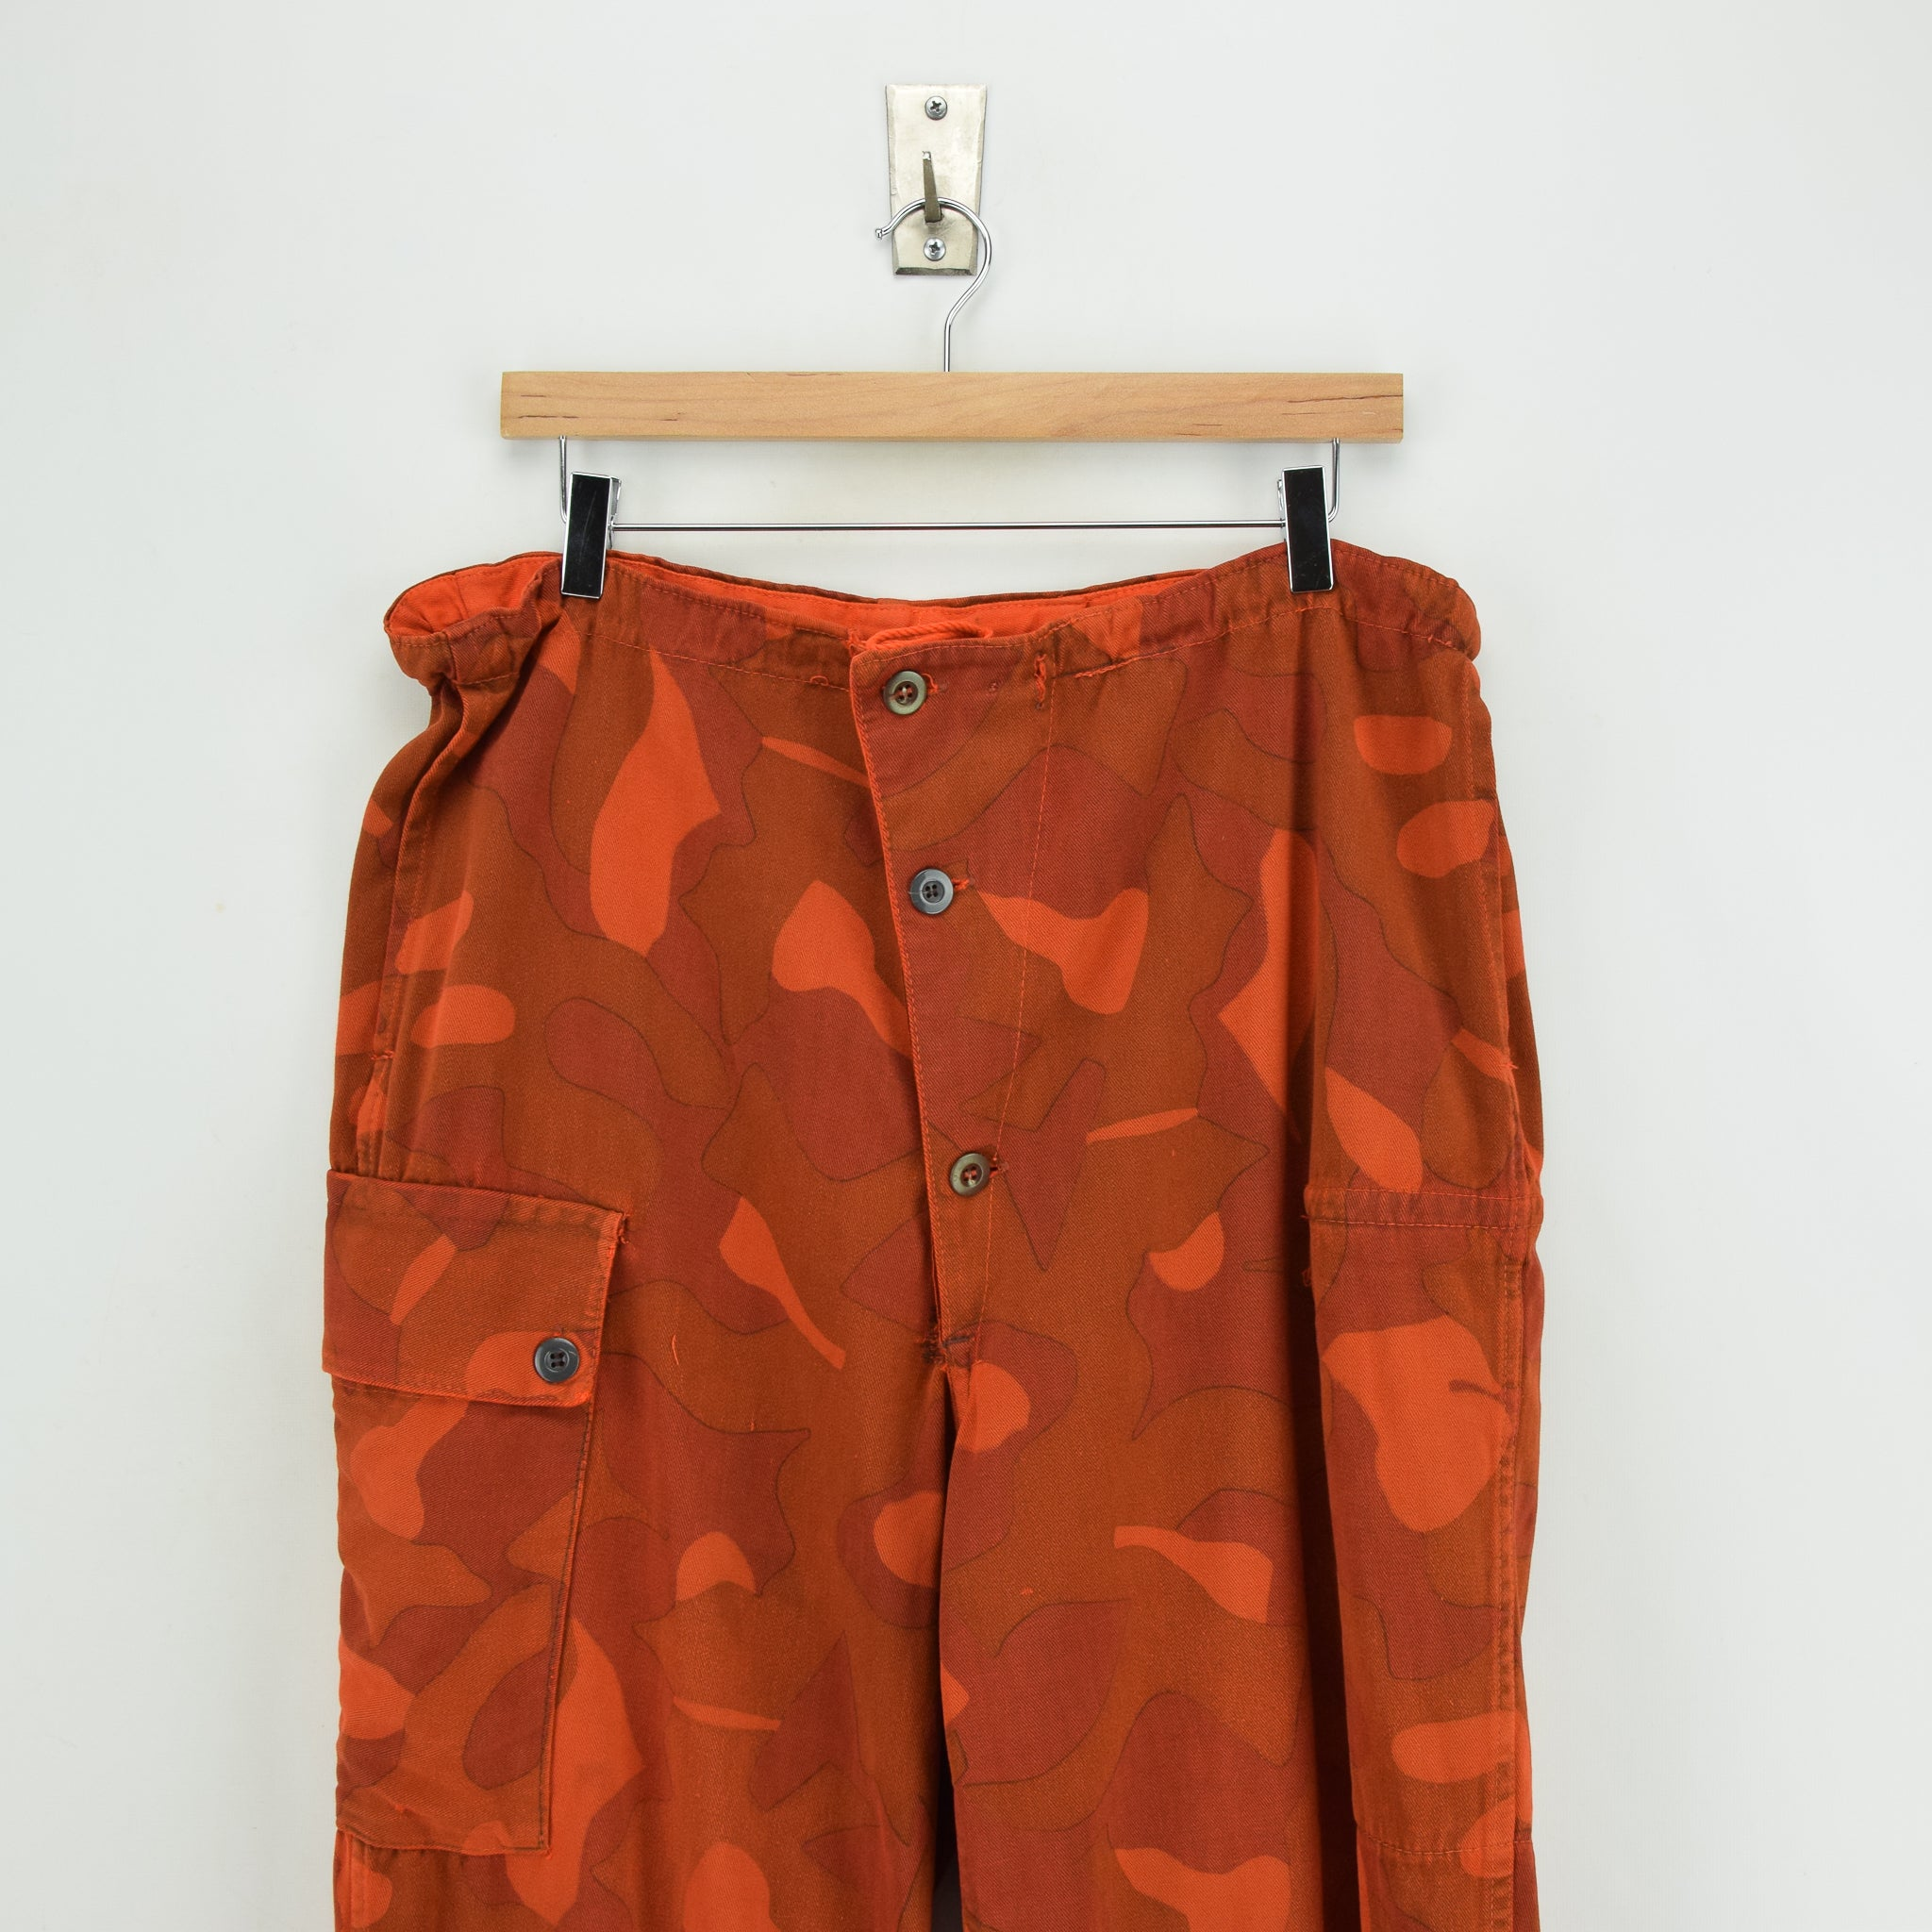 Vintage Military Finnish Army Orange Overdyed Camo Mountain Trousers 34-36 W front waist